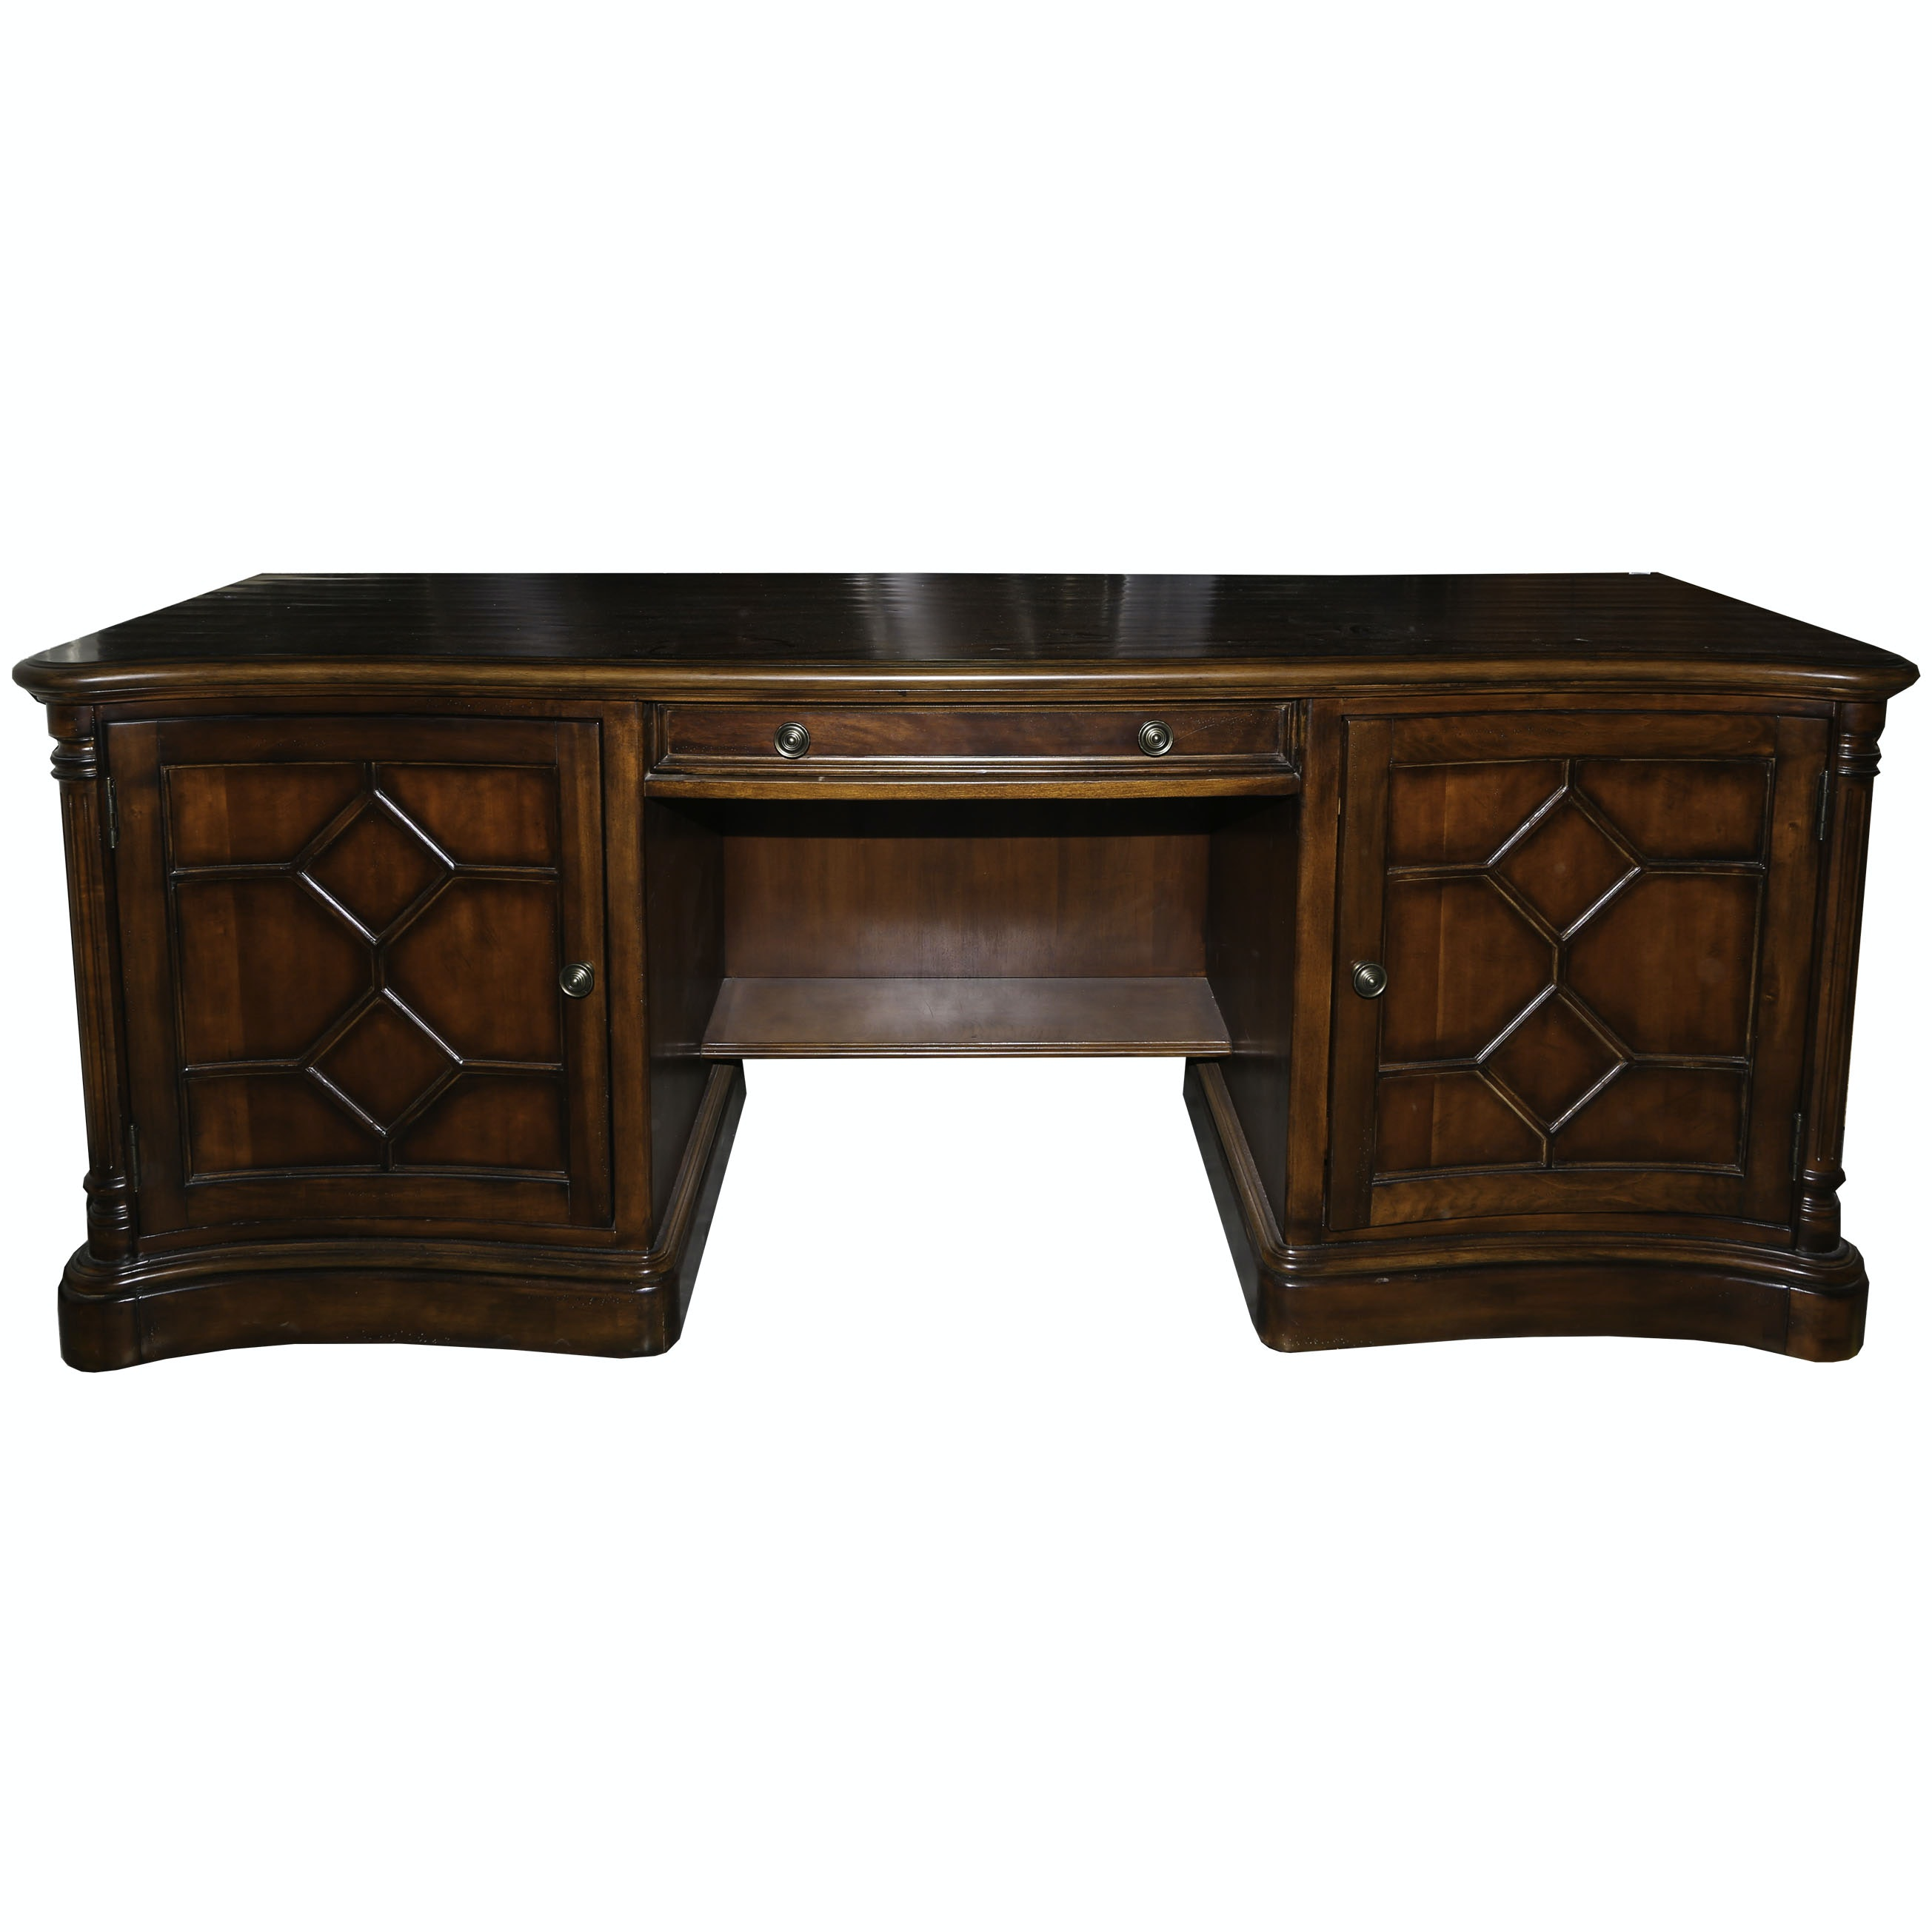 "Executive Desk by Hooker Furniture ""Seven Seas"" Collection"